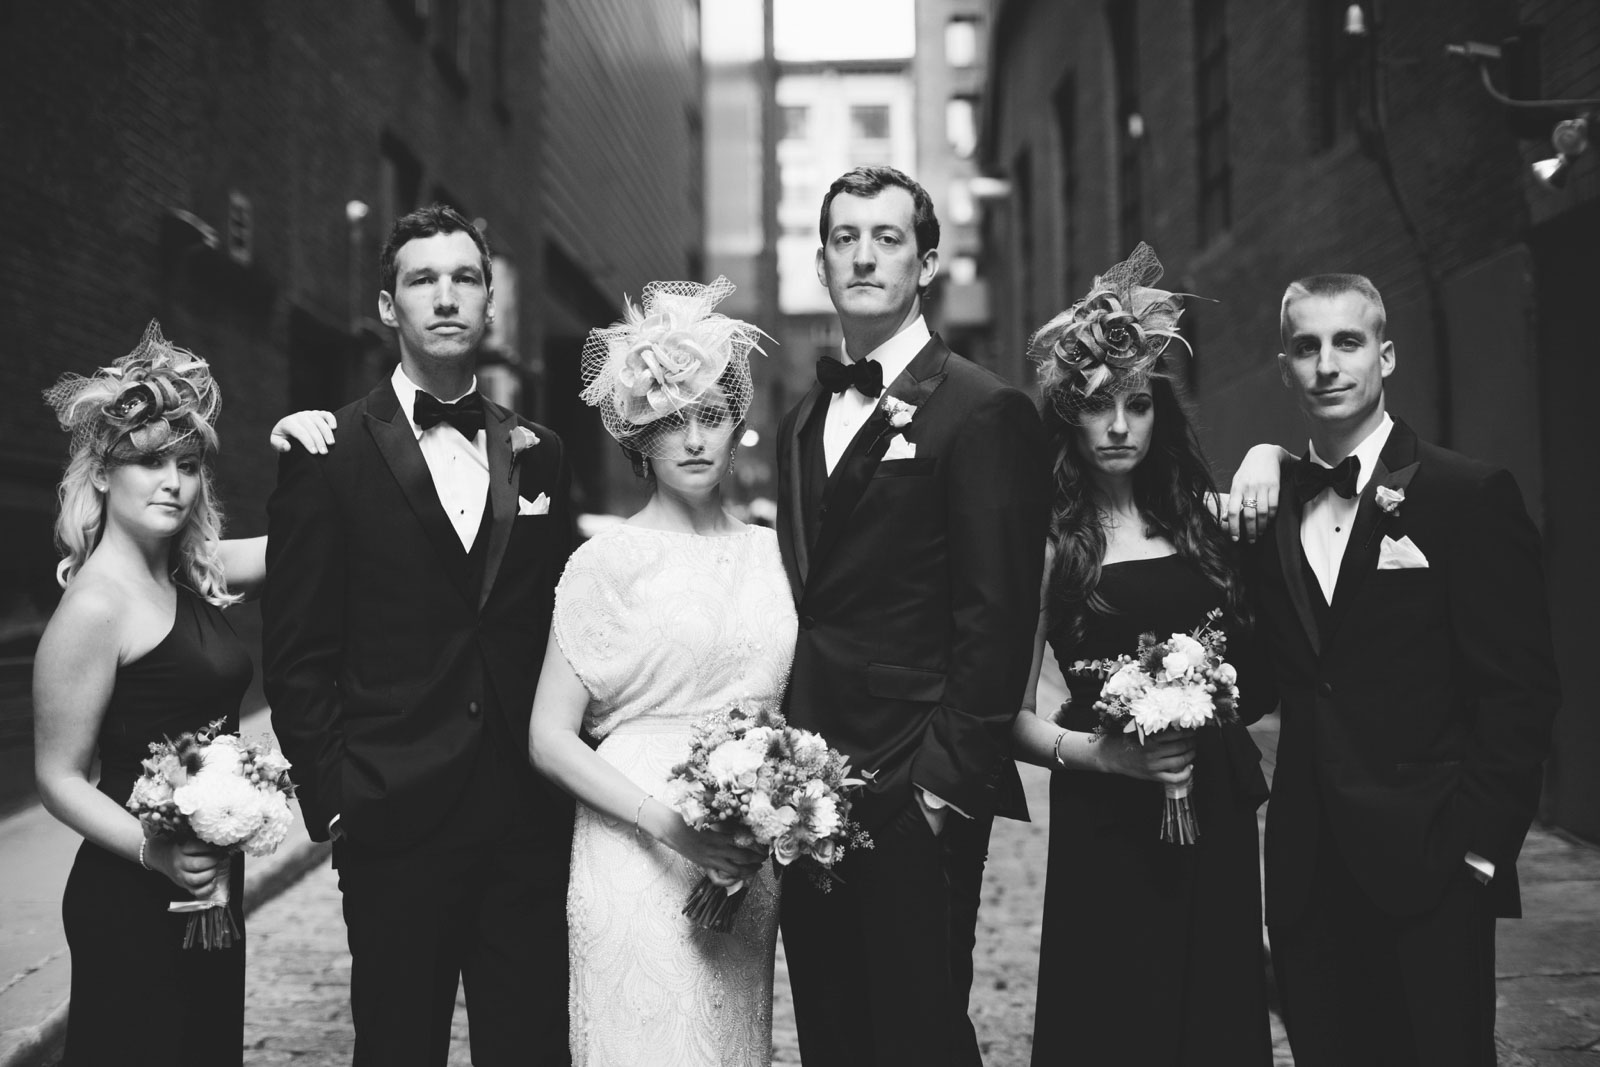 classic black and white Gatsby-inspired bridal party portrait, fascinator hats and black tie attire